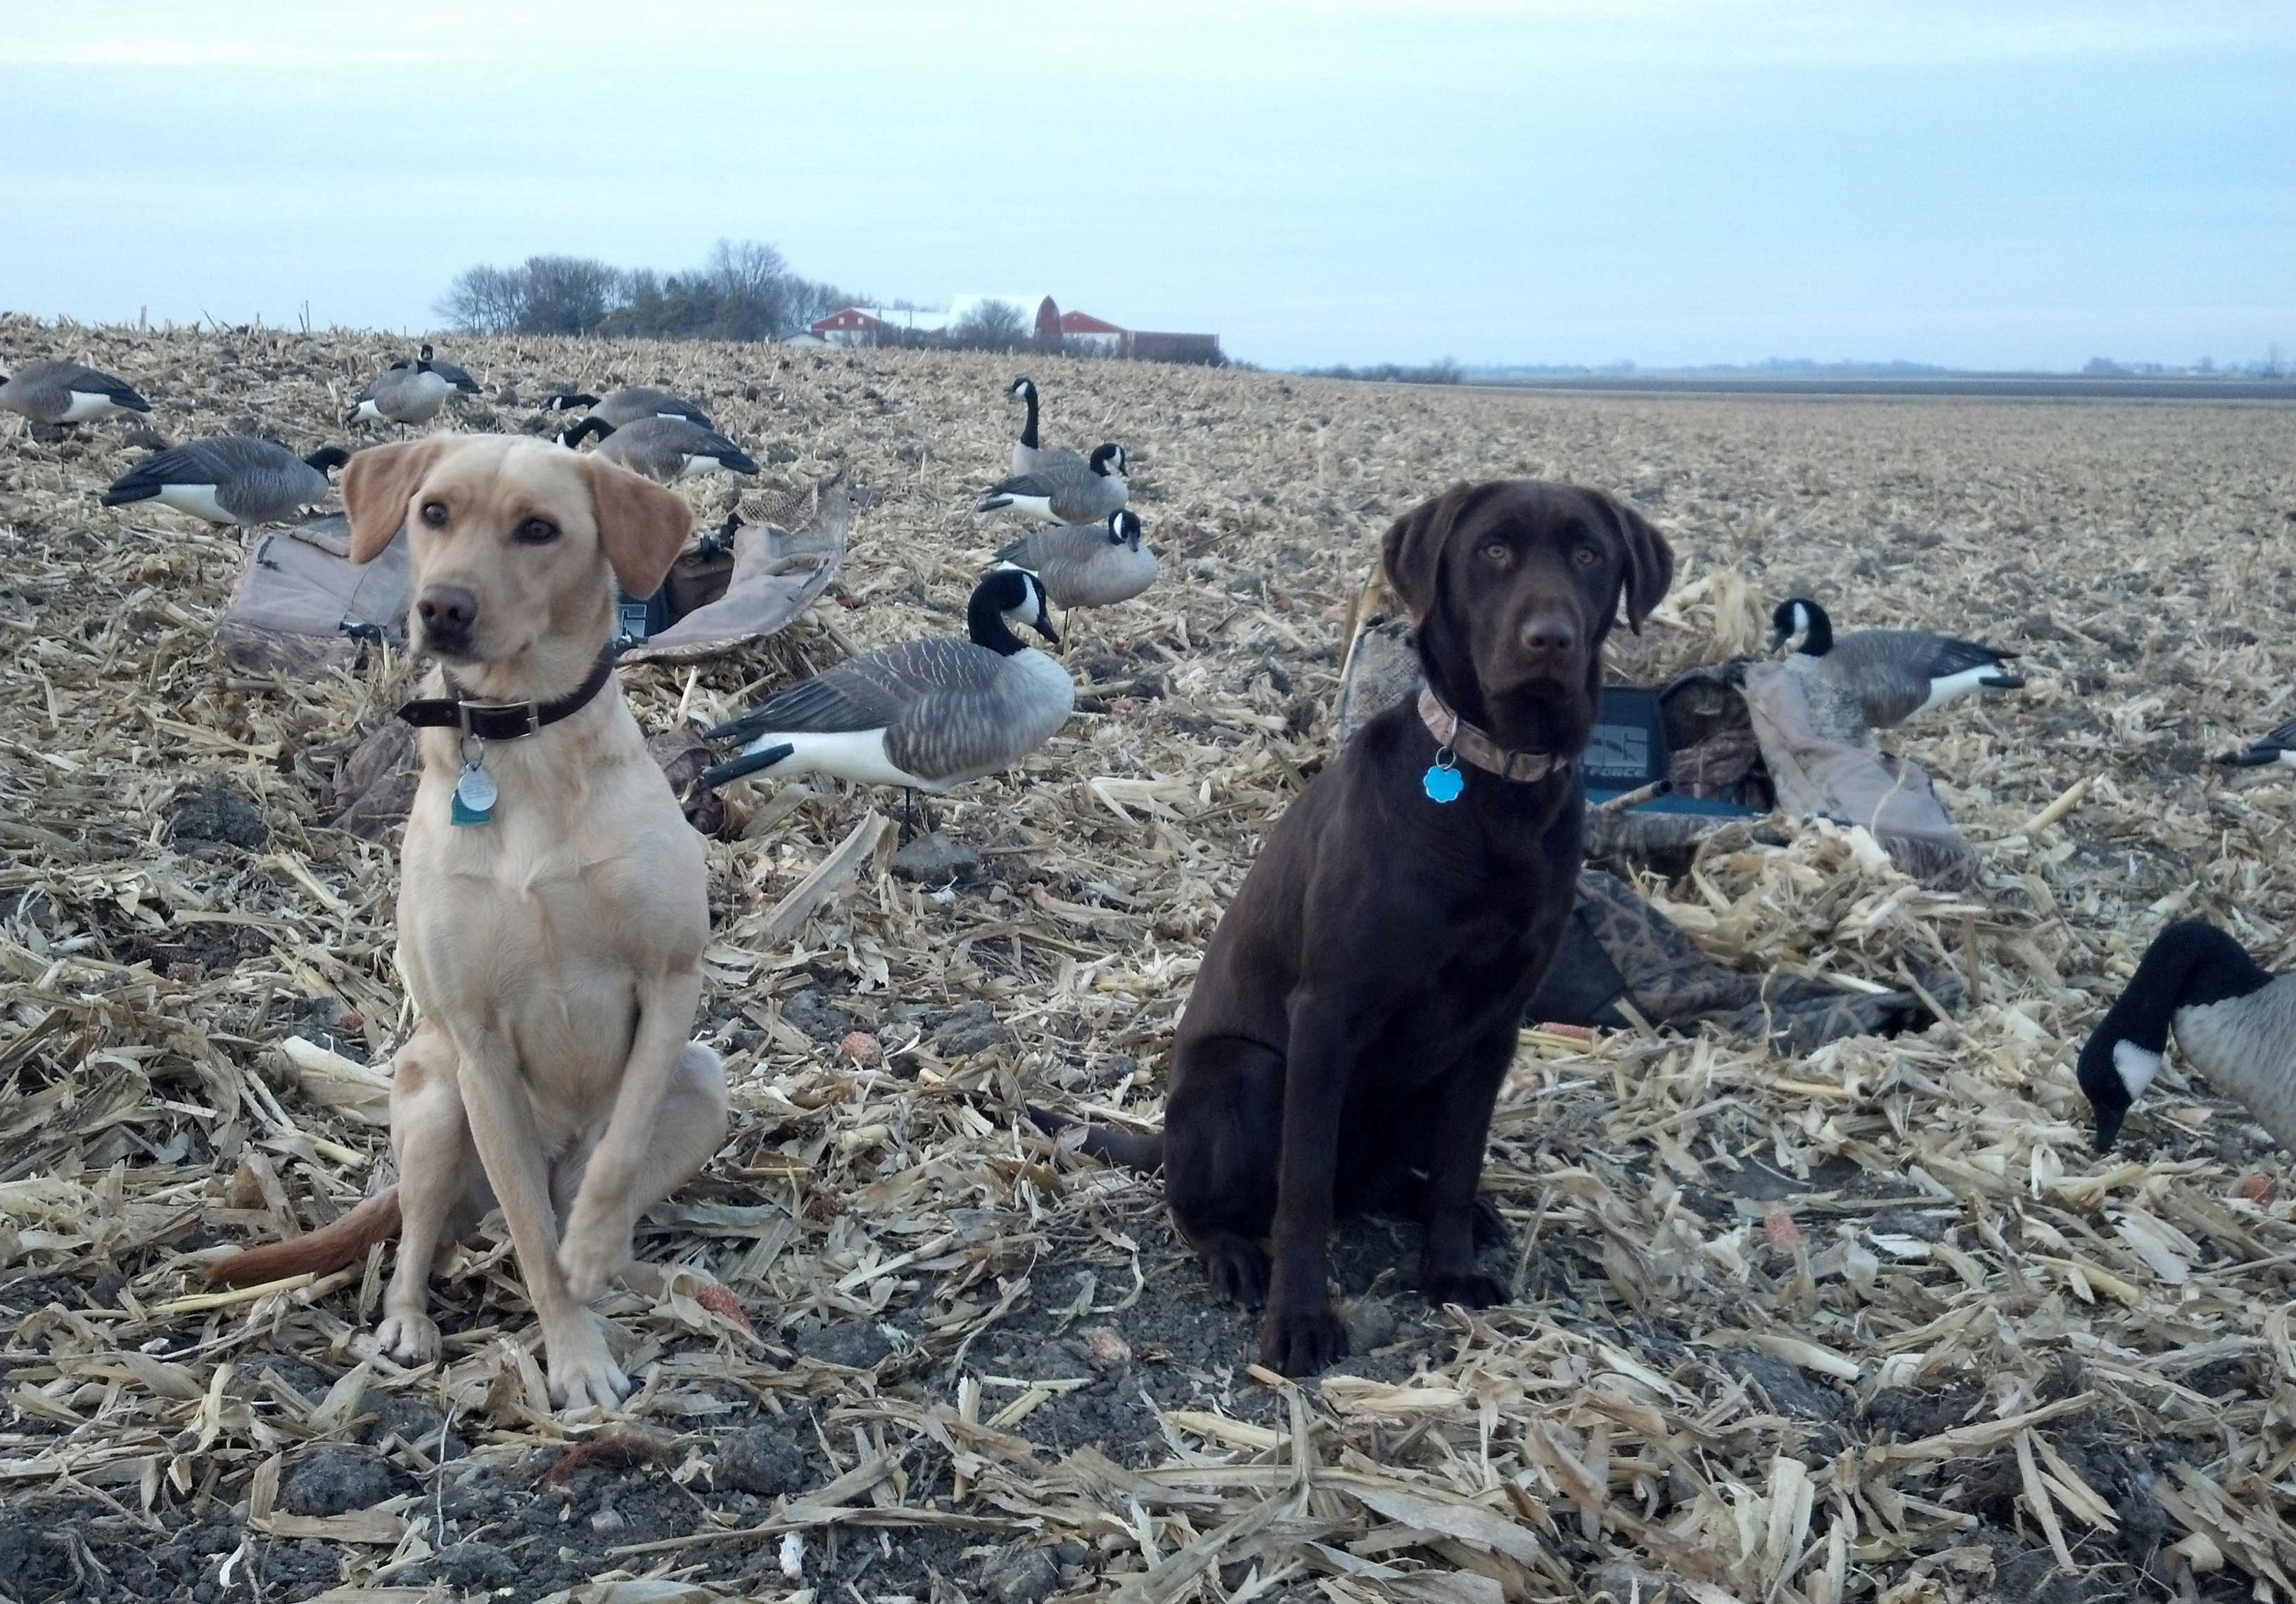 Hunting dogs near Canada goose decoys on a hunt.